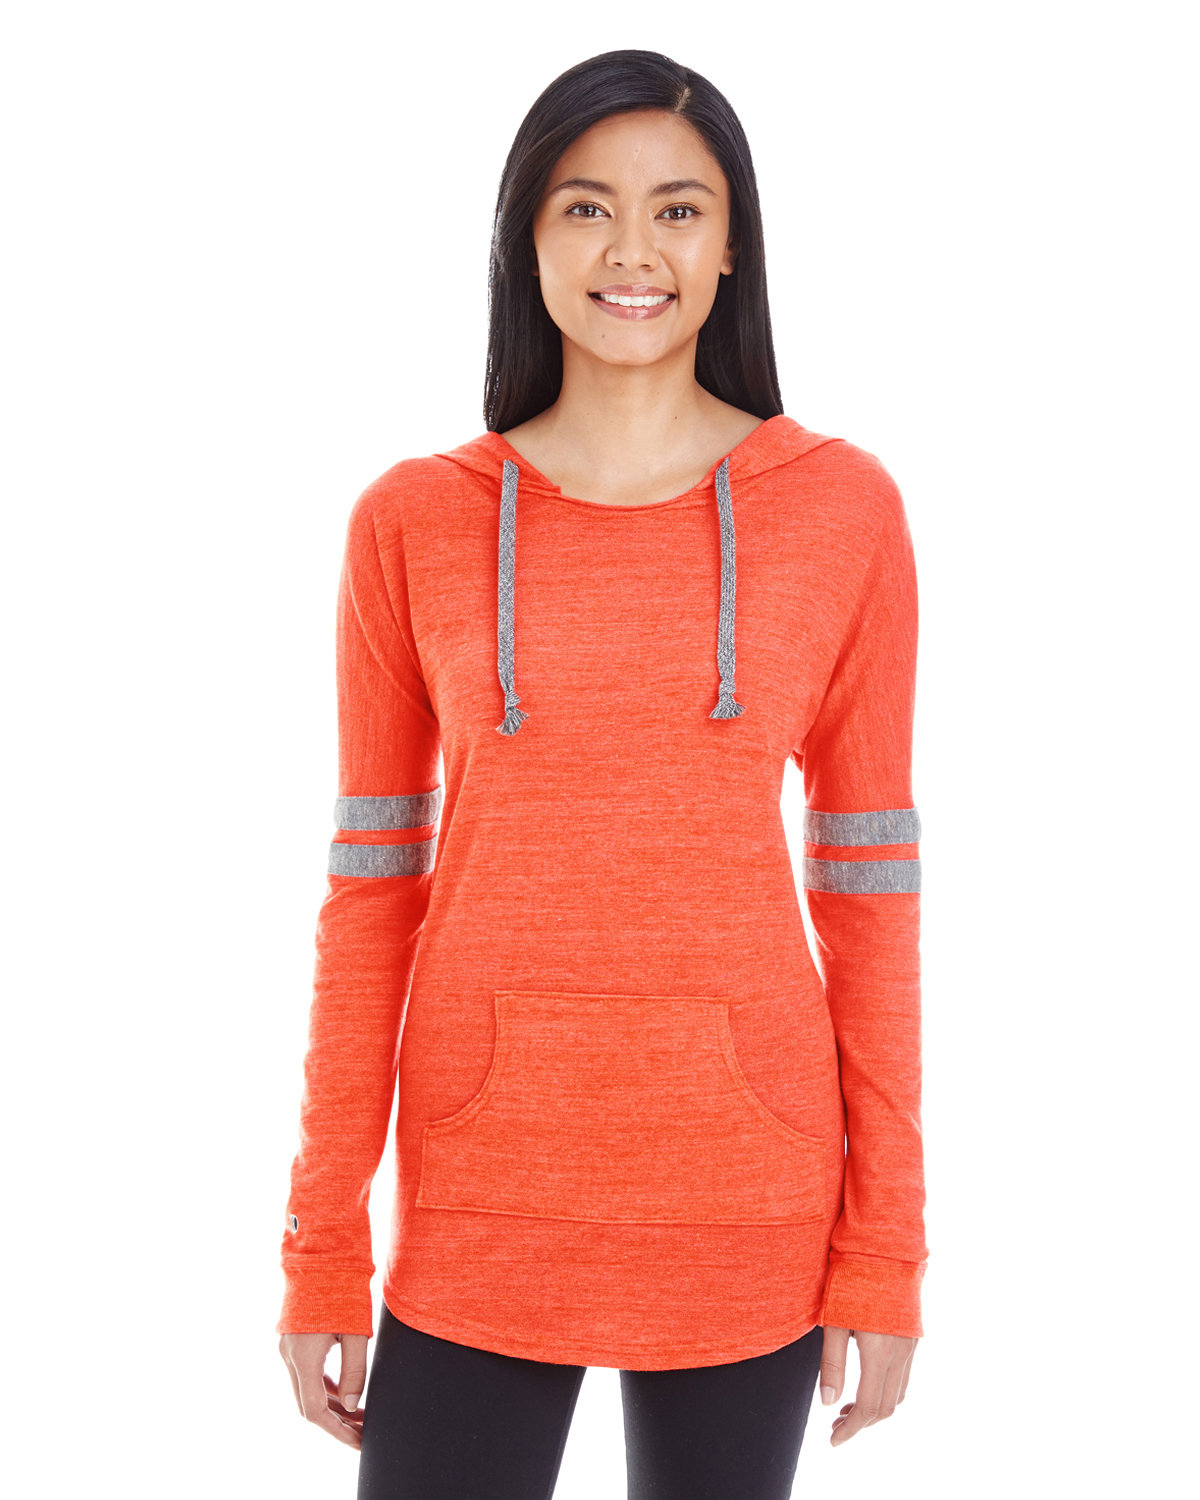 Holloway Ladies' Hooded Low Key Pullover VIN ORNG/ VN GRY